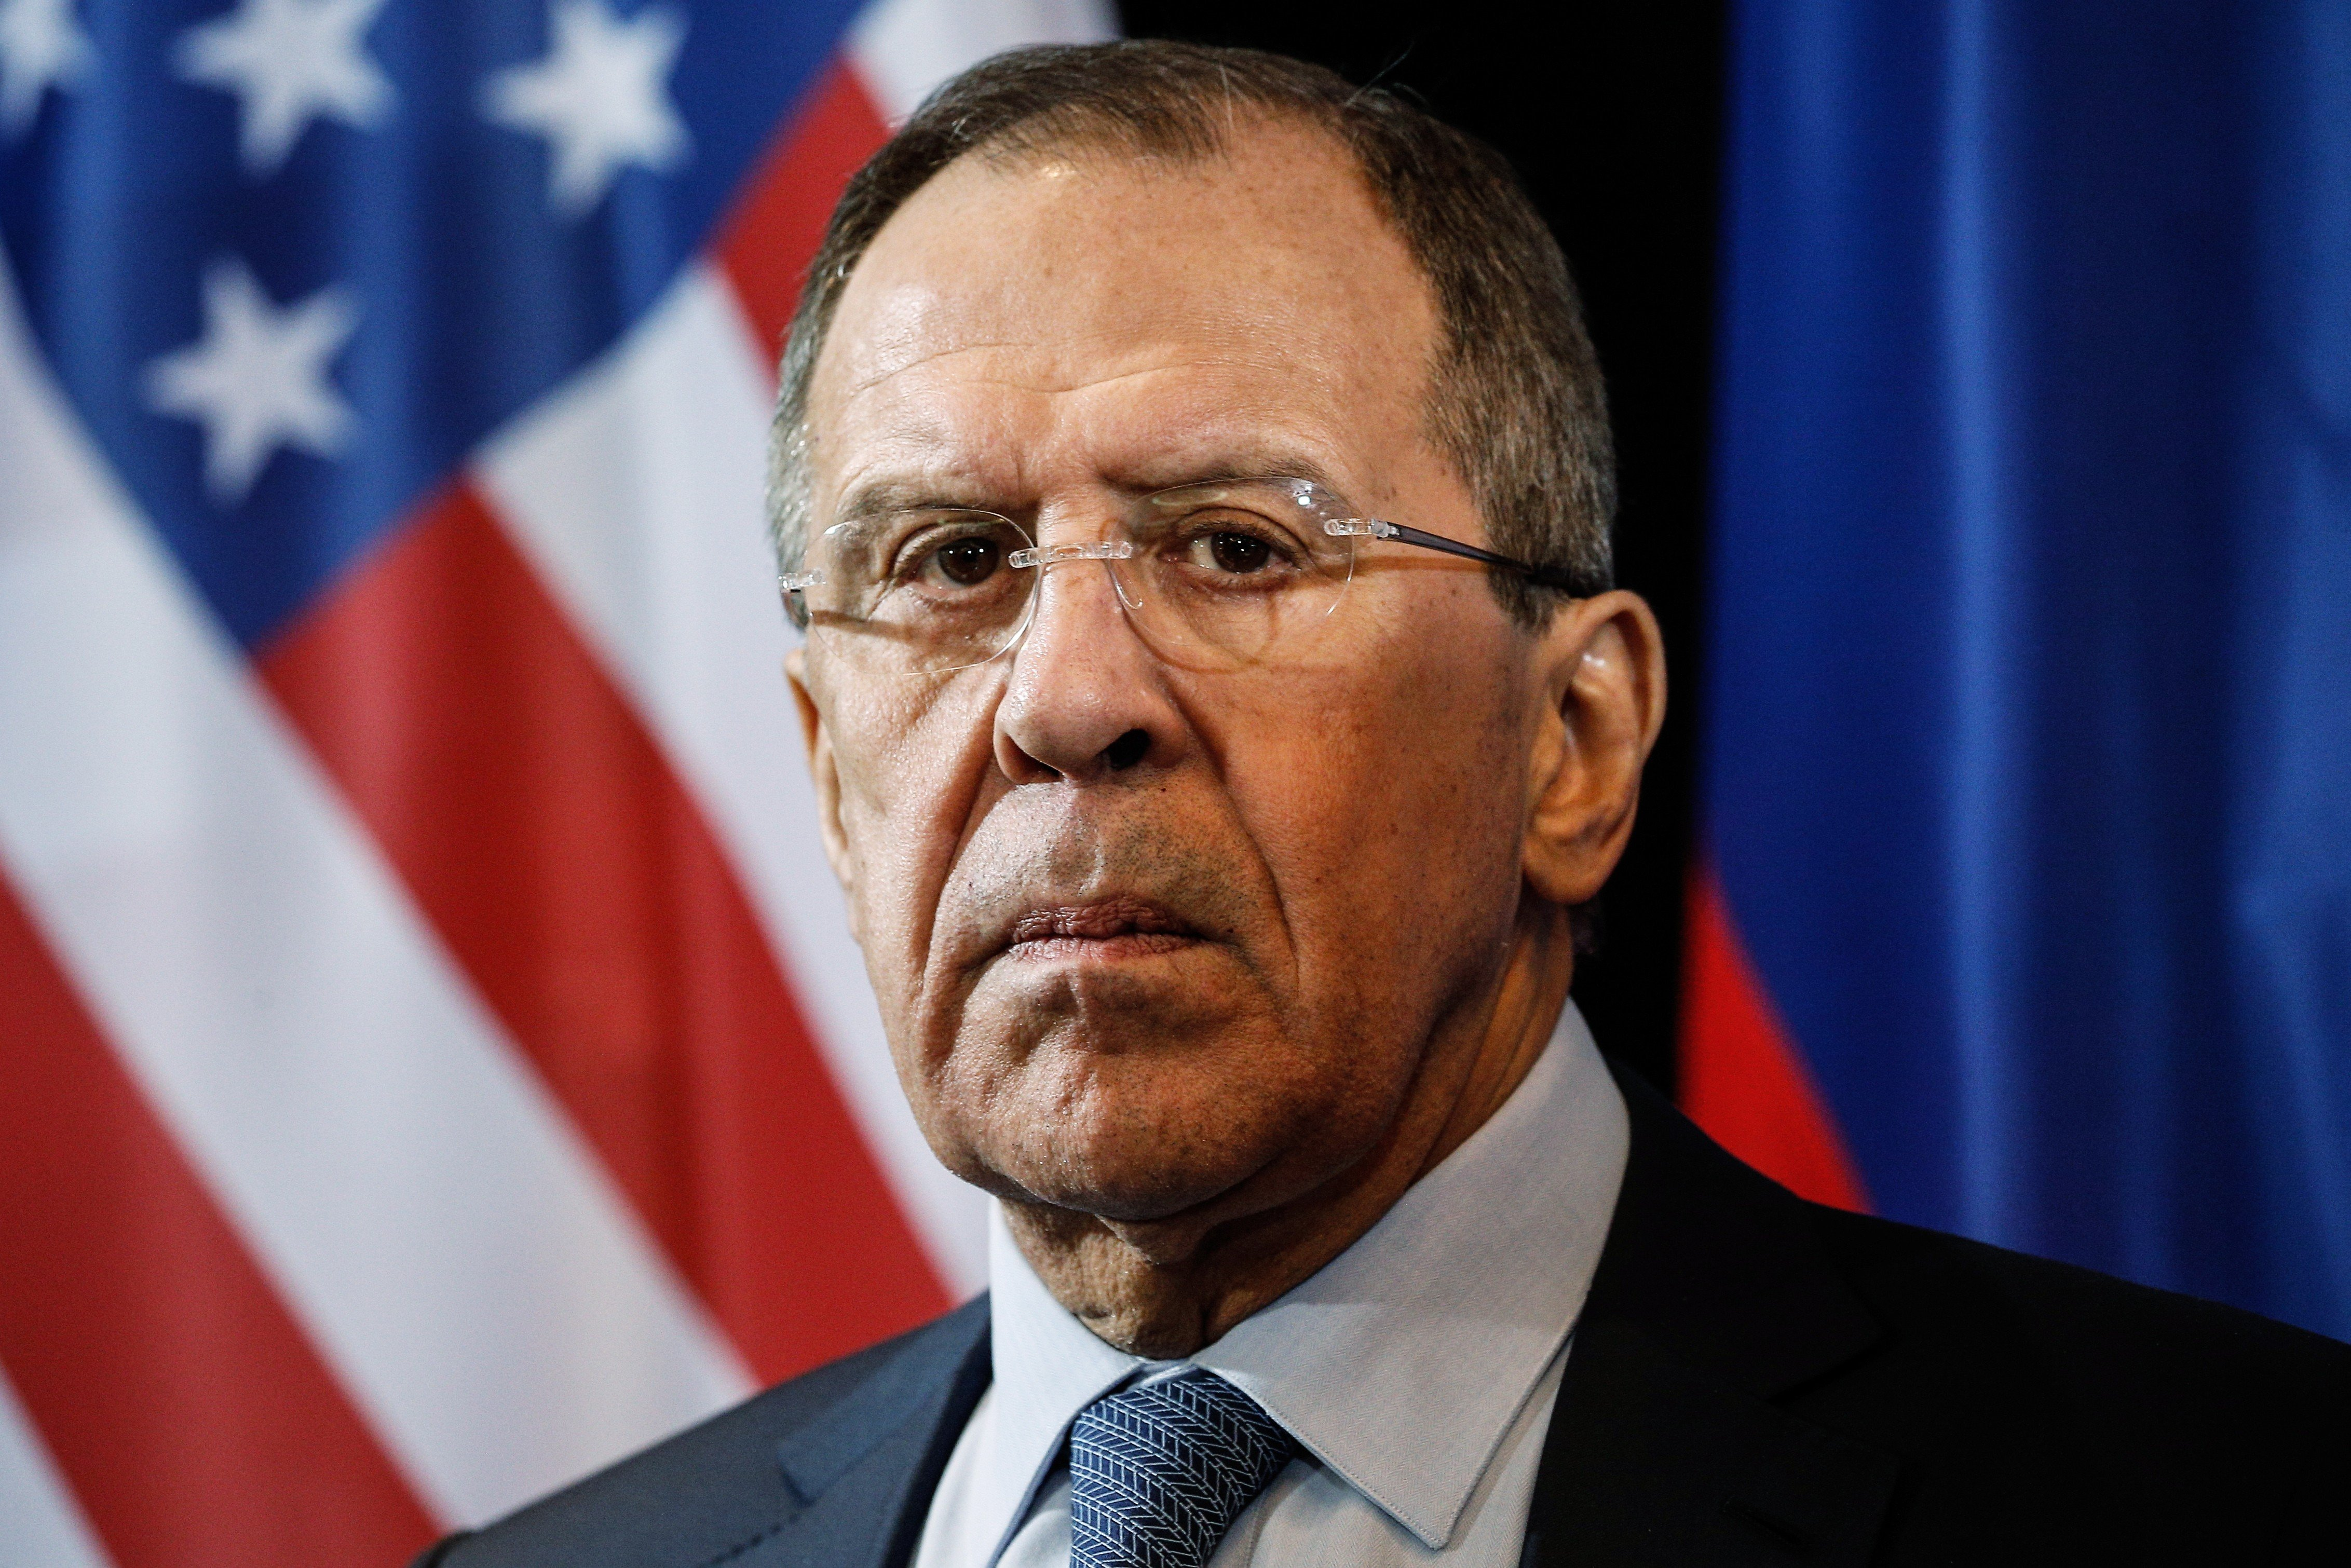 Russia's Foreign Minister Sergei Lavrov in a press conference following a meeting of the International Syria Support Group in Munich, Germany on Feb. 12, 2015.